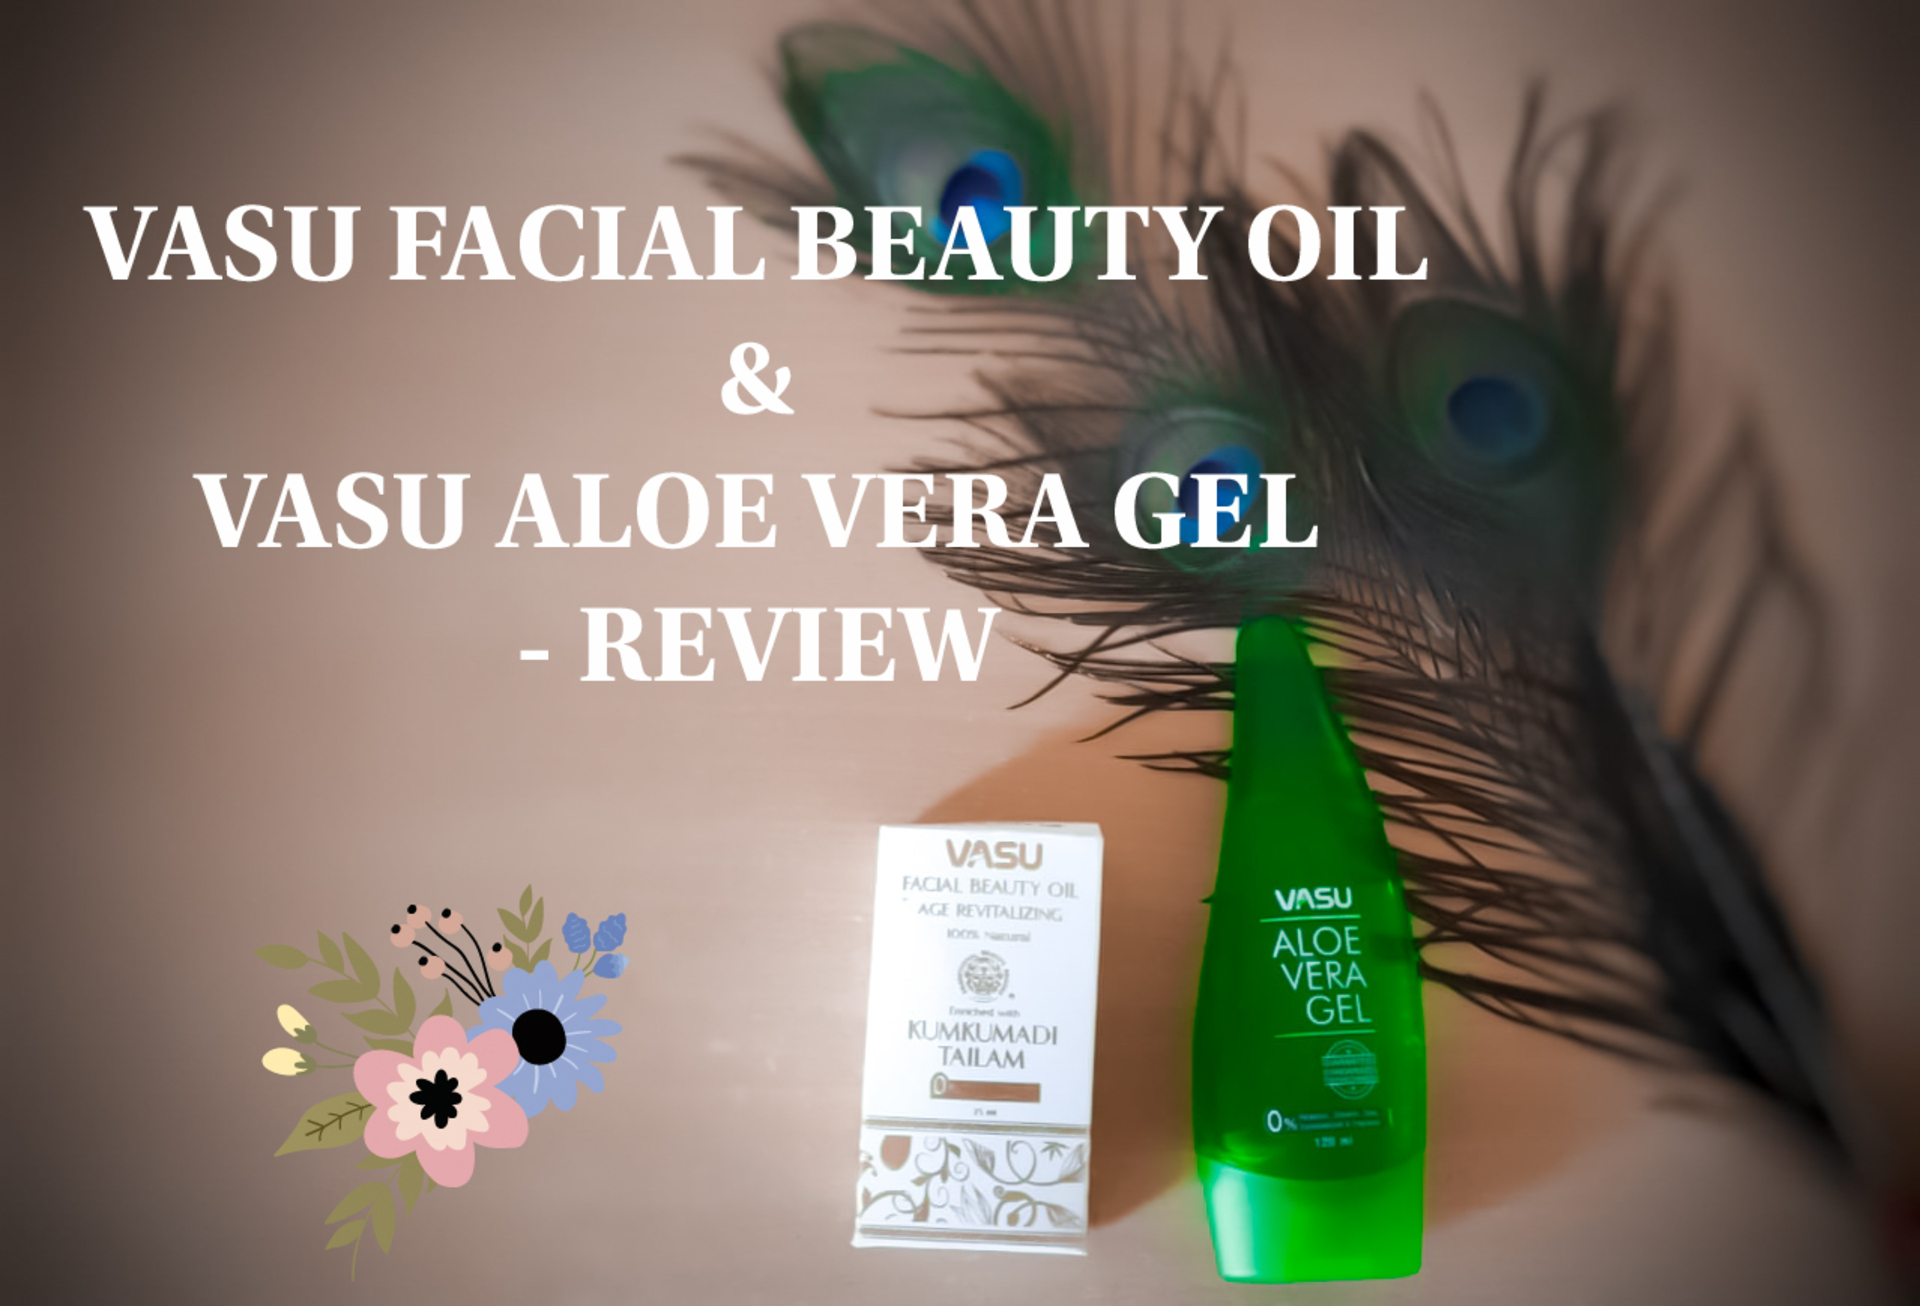 Vasu Facial Beauty Oil & Vasu Aloe Vera Gel - REVIEW image